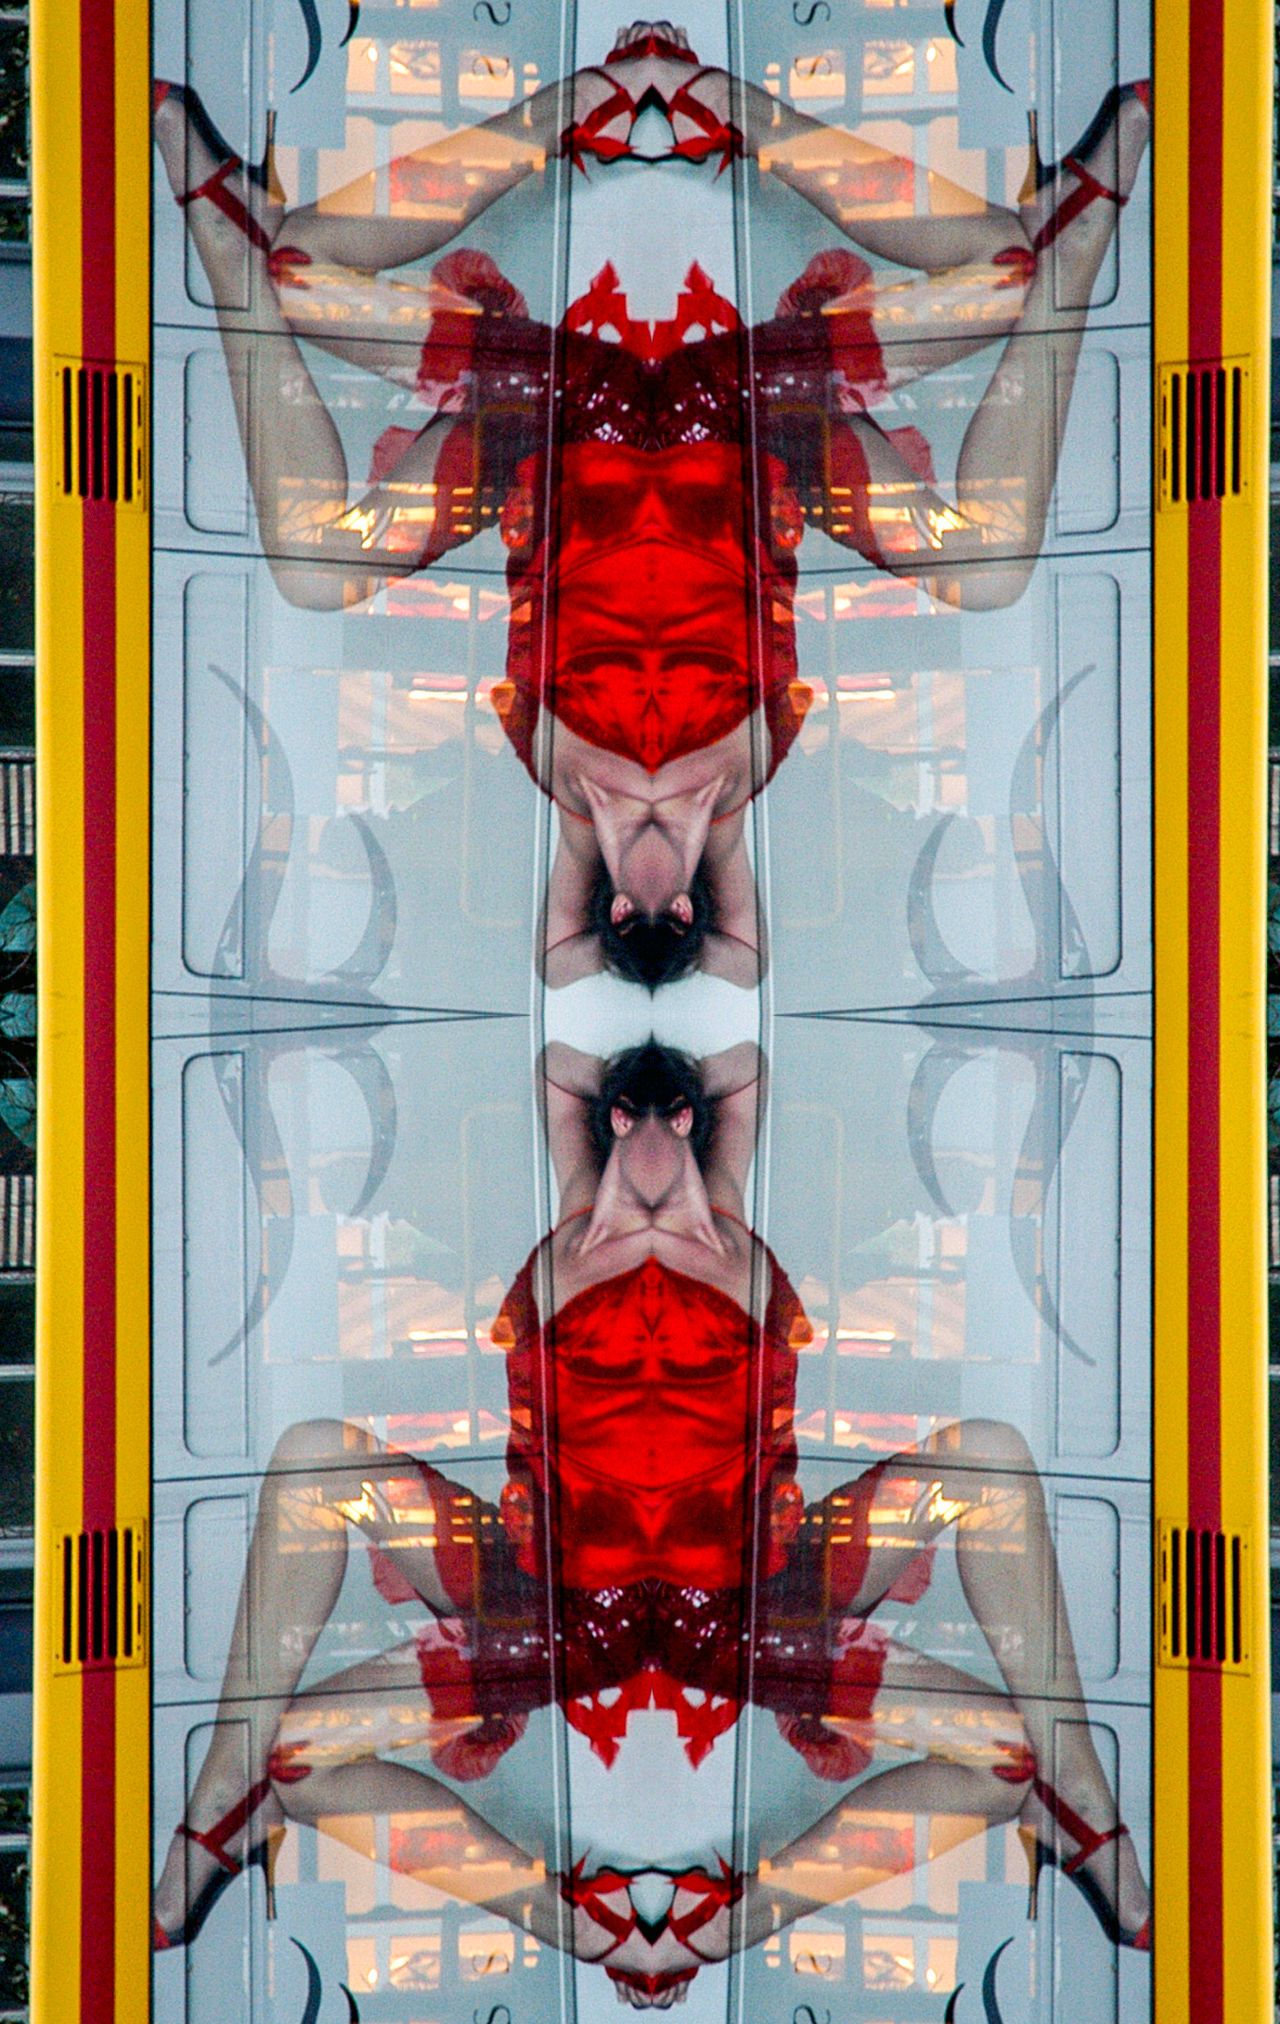 Abstract Photography Advertising Campaign Billboard Mirror Reflection Modification Modified No People Outdoors Red Red Dress Woman Legs Woman's Silhouette